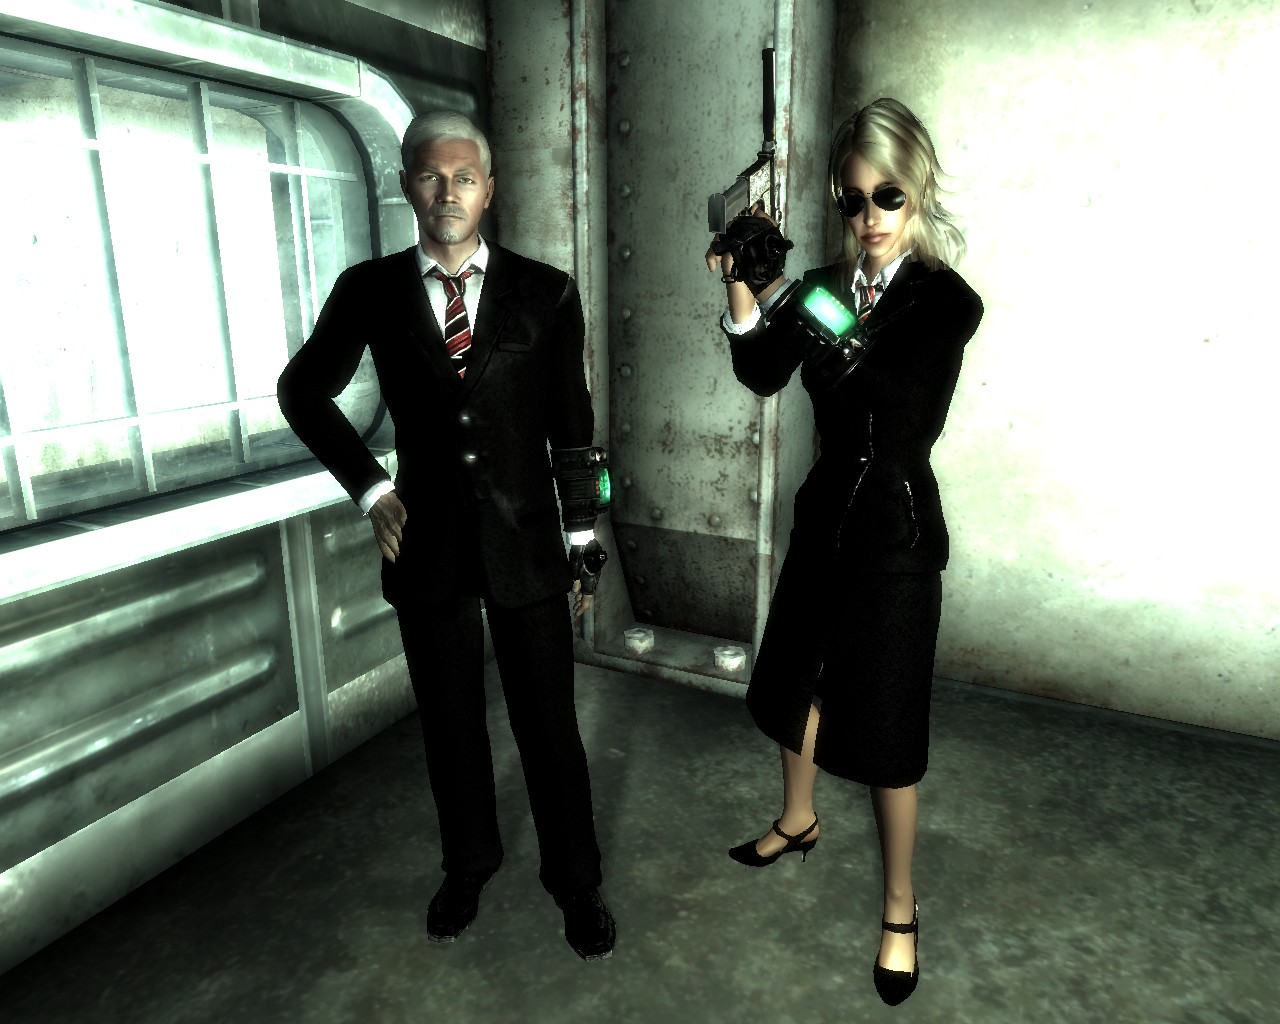 Fallout 3 Mod - Buisness Suit screenshot 1